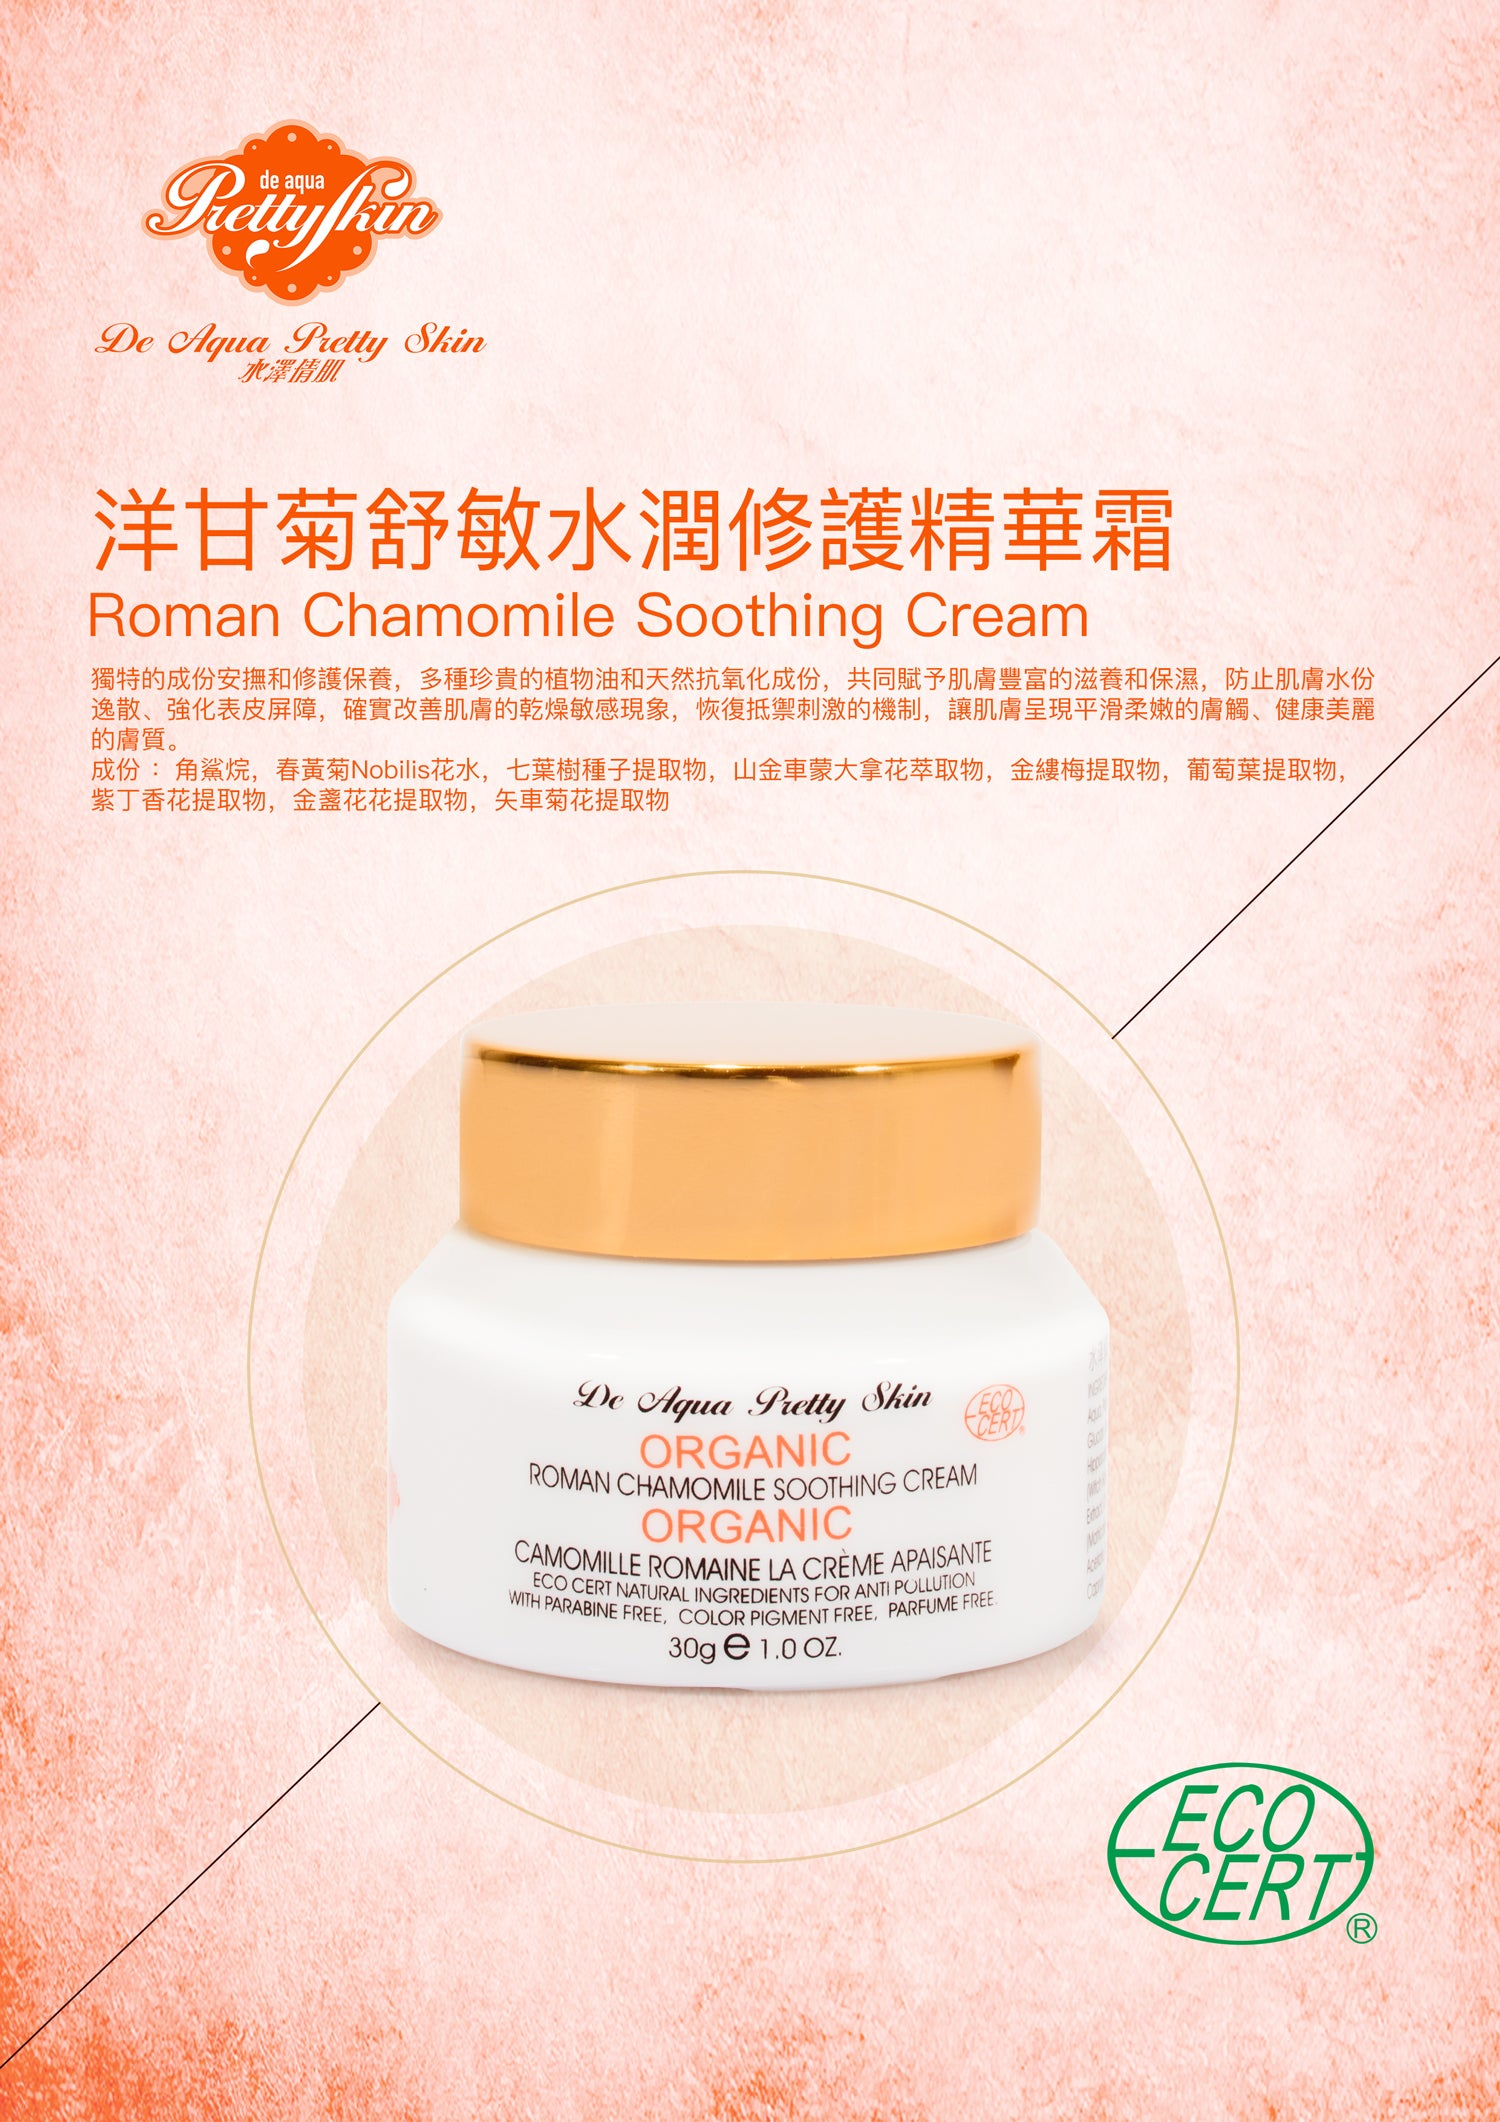 洋甘菊舒敏水潤修護精華霜 Roman Chamomile Soothing Cream